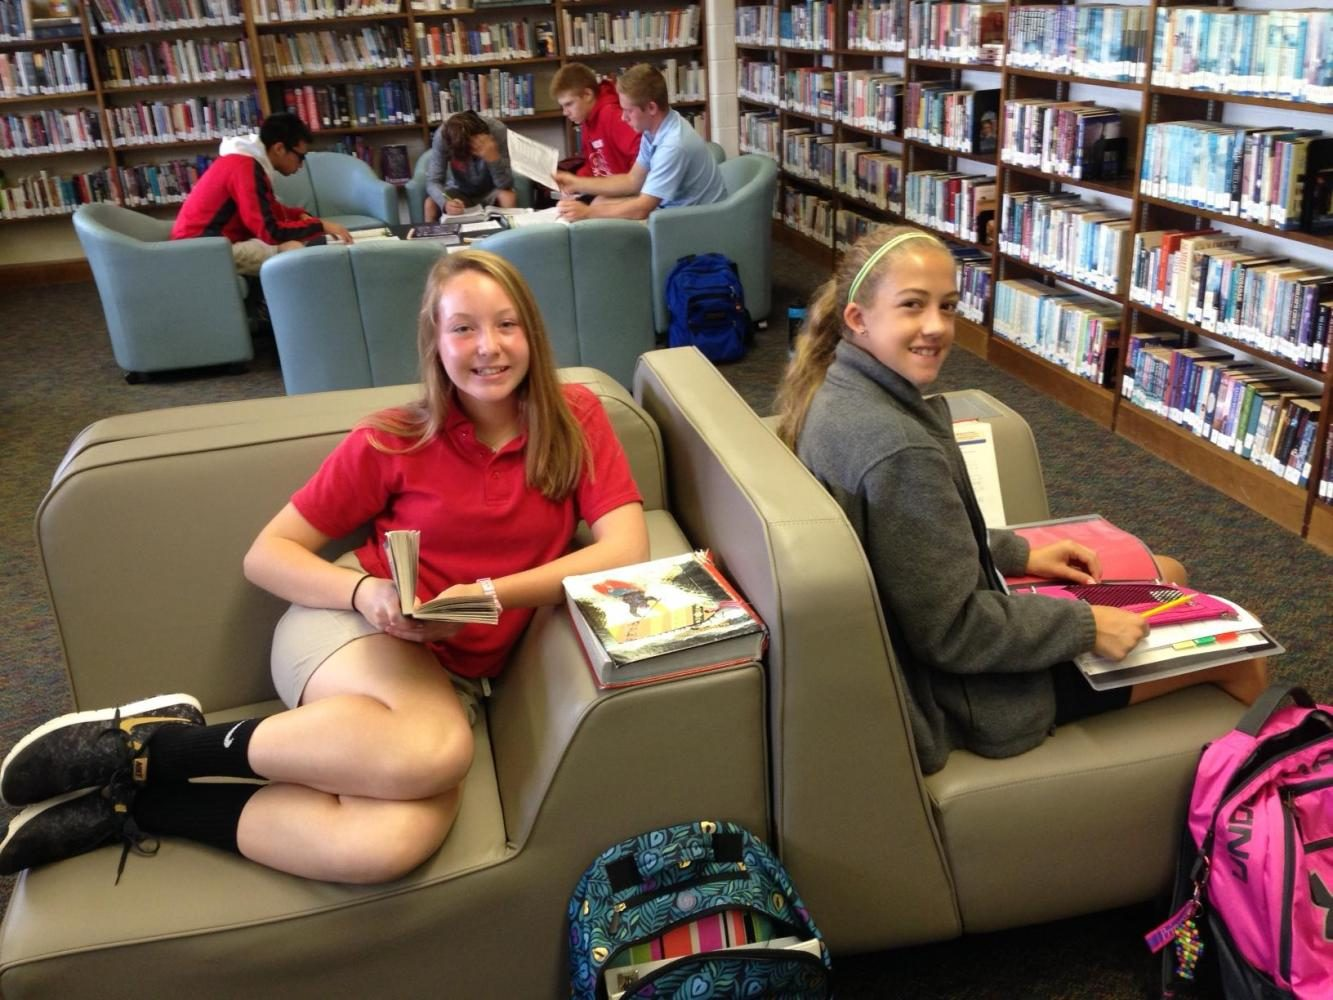 Students pause from studying to pose for picture in the CLC.